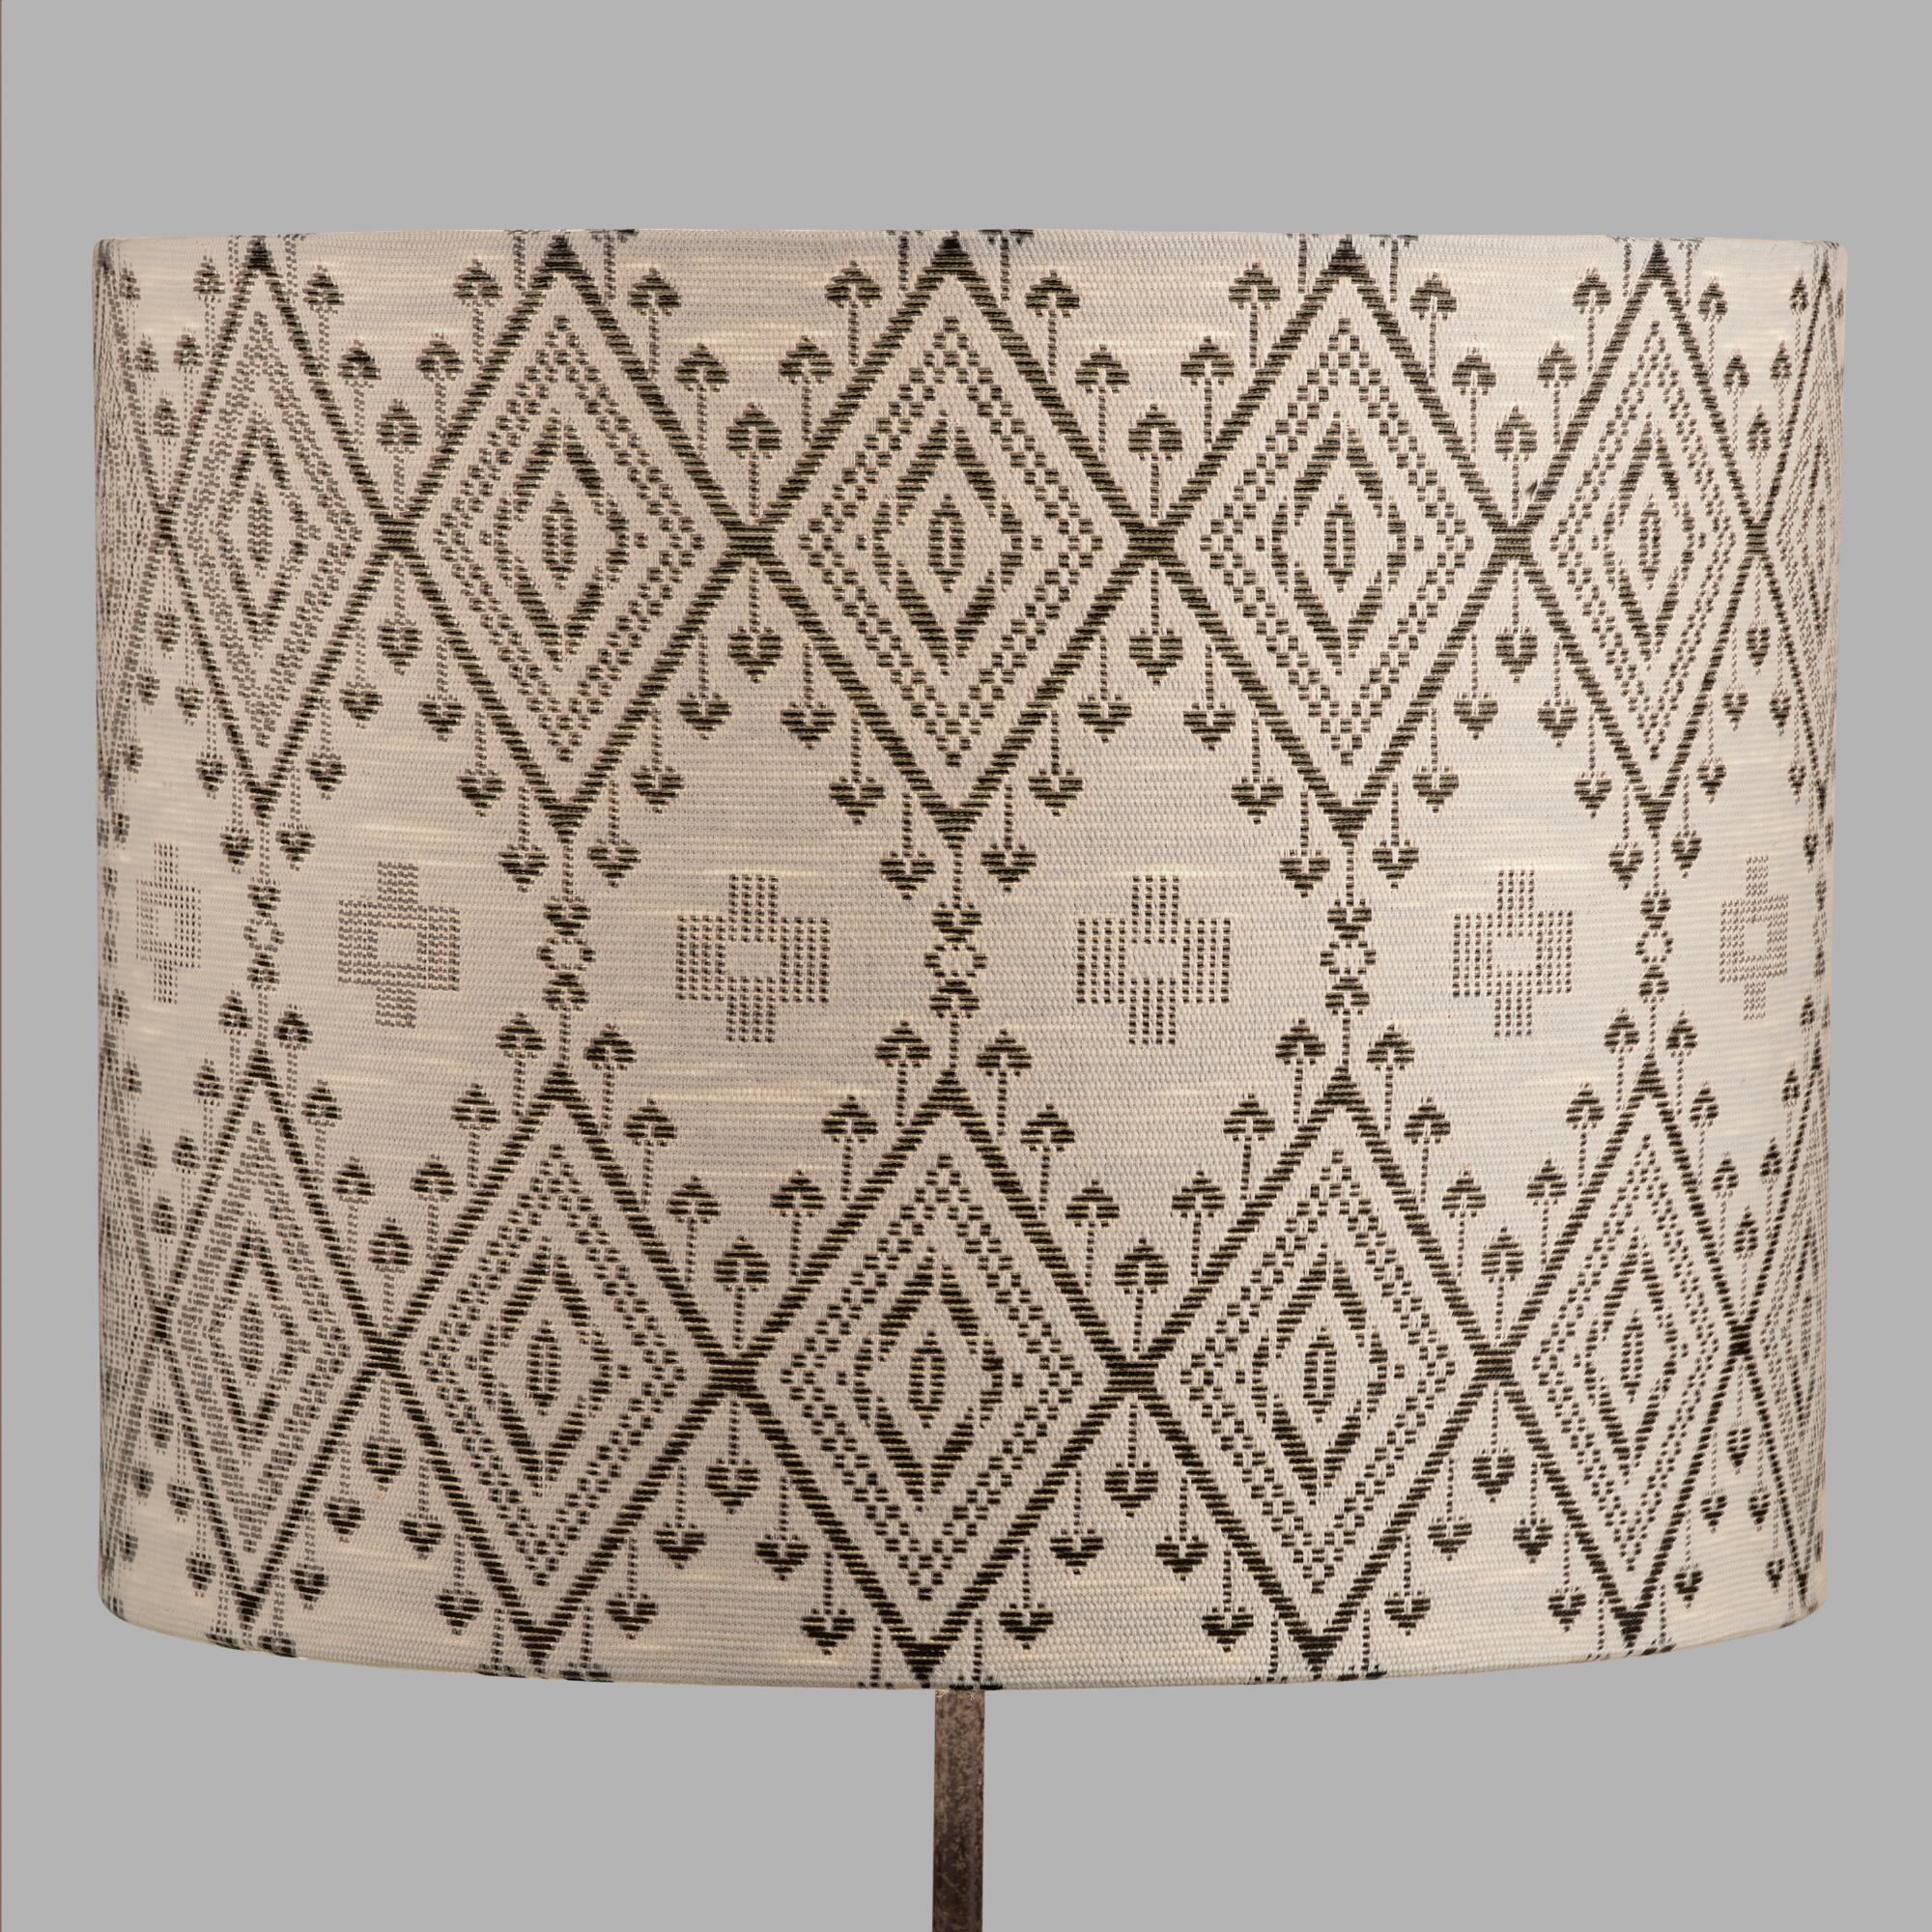 Table top lamps unique lamp shades world market tribal drum table lamp shade geotapseo Choice Image